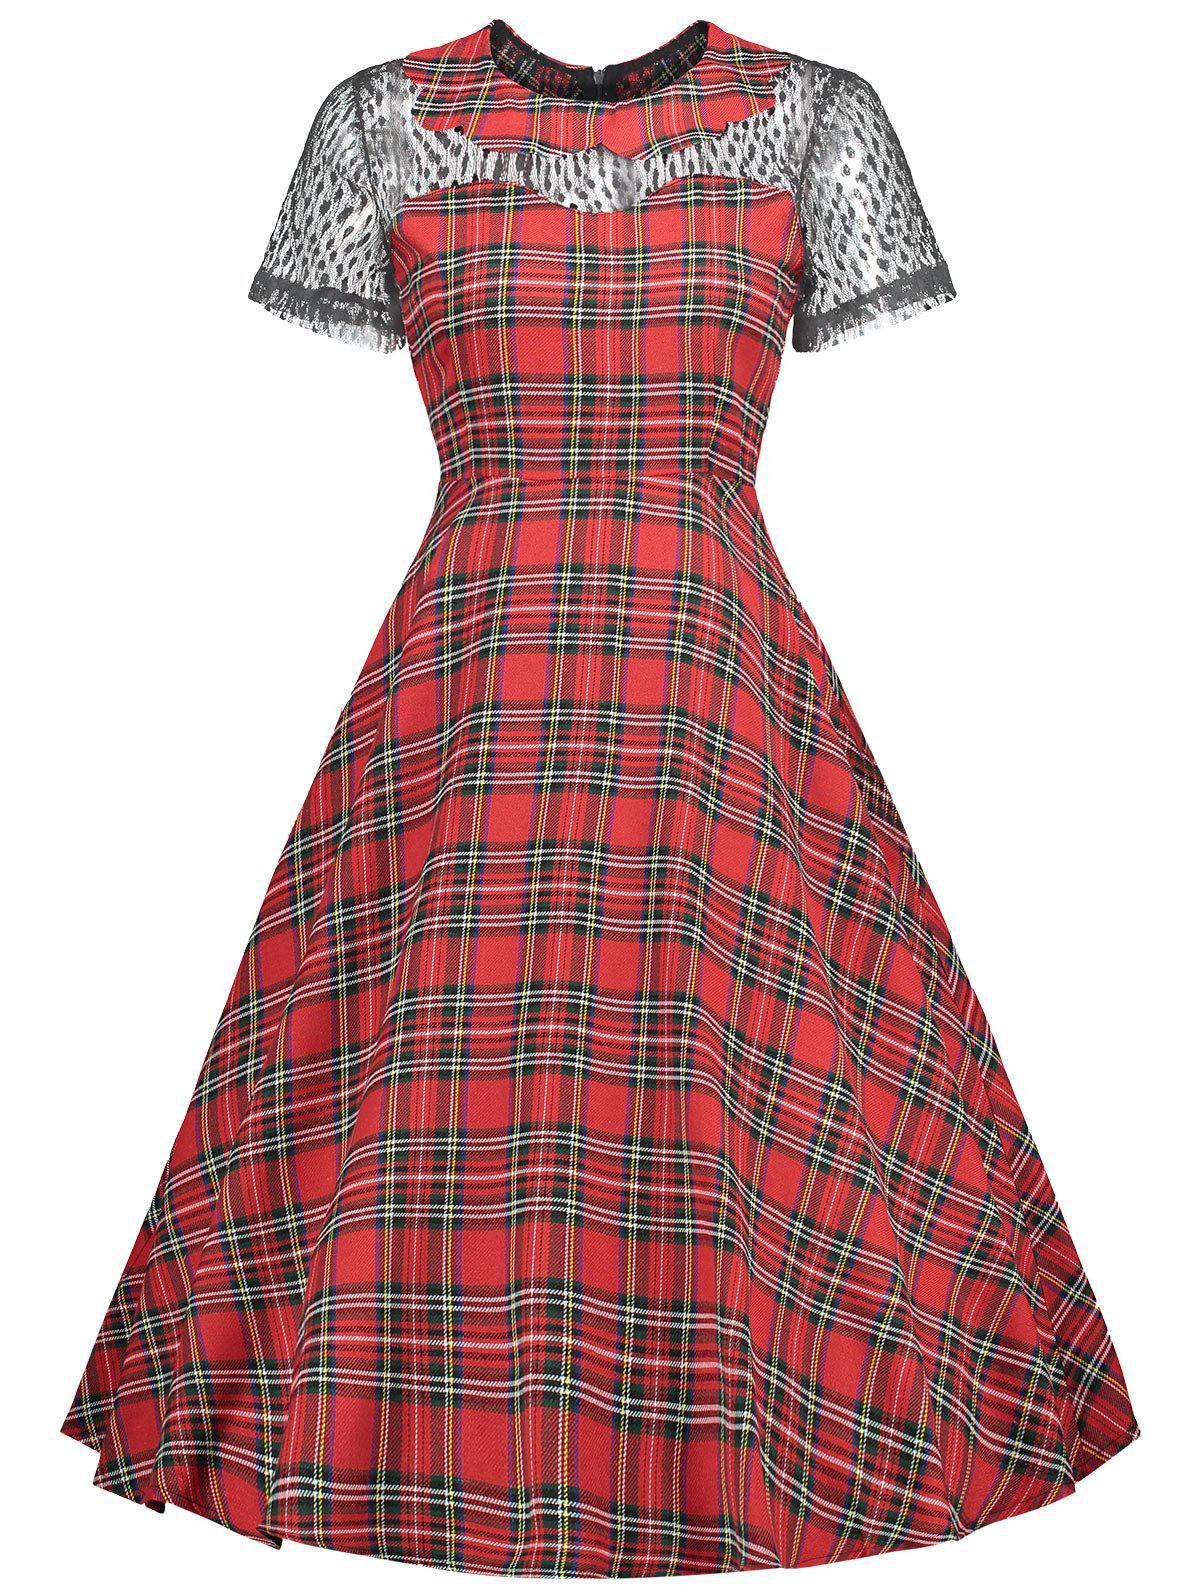 Chic Lace Insert Collared Tartan Vintage Dress